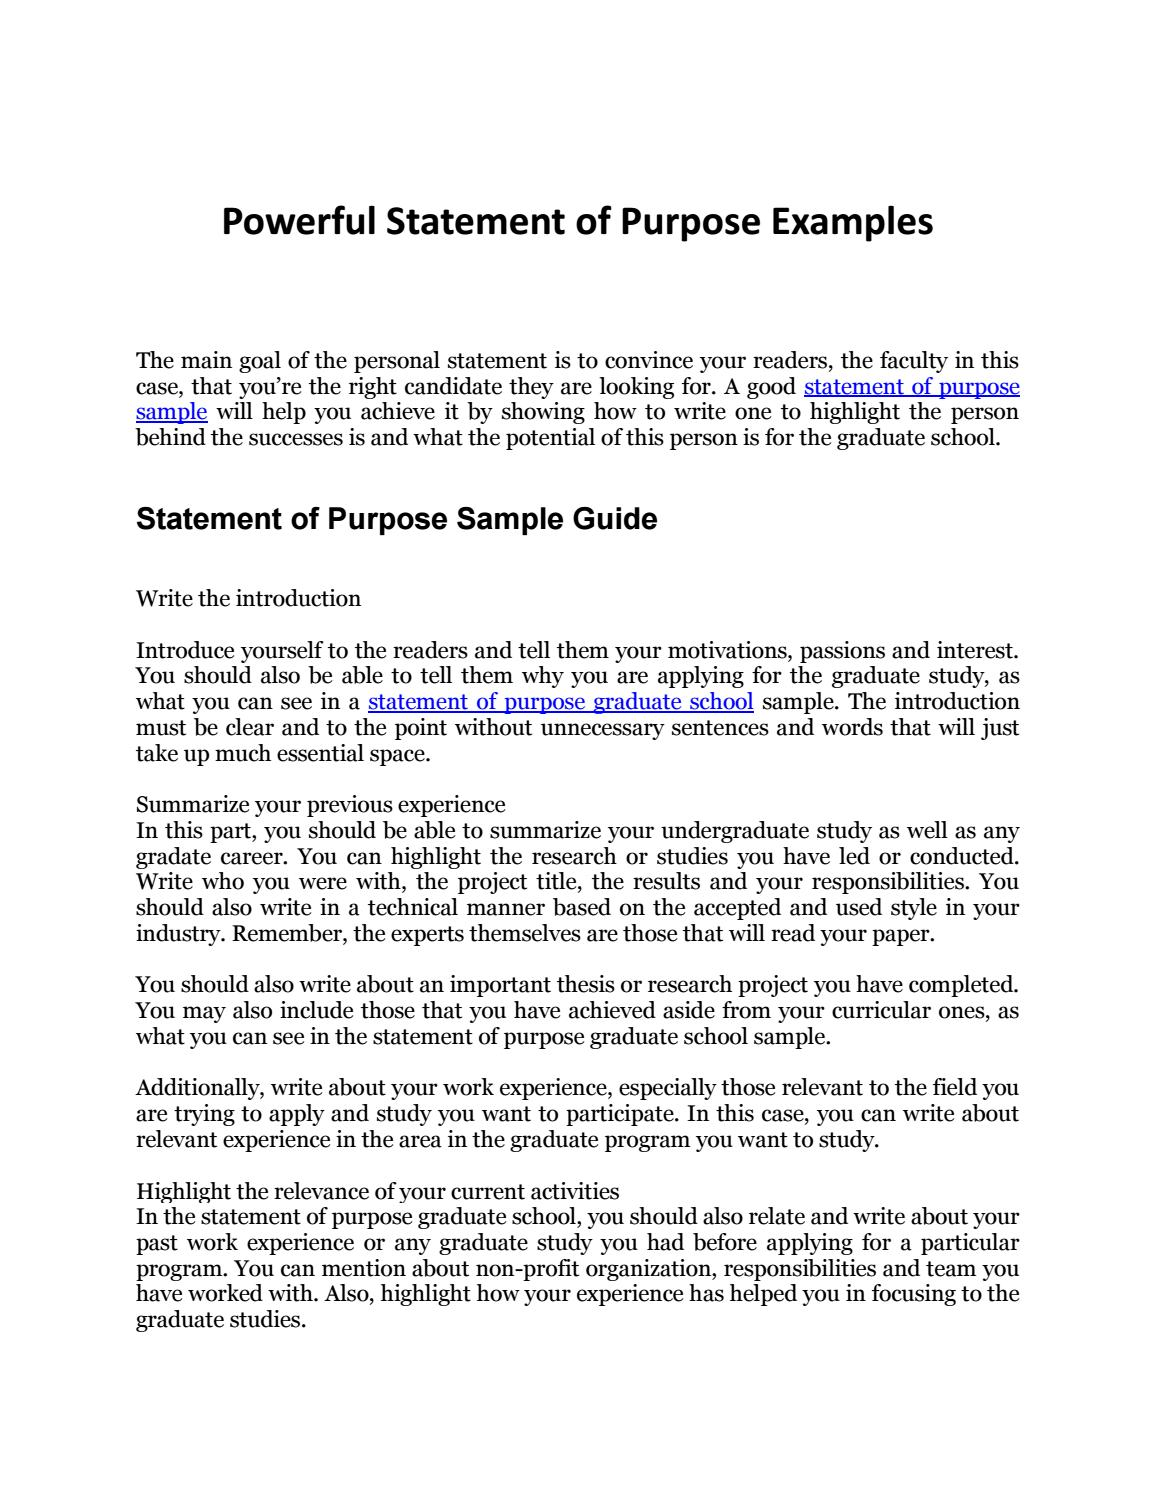 How to write statement of purpose for phd program